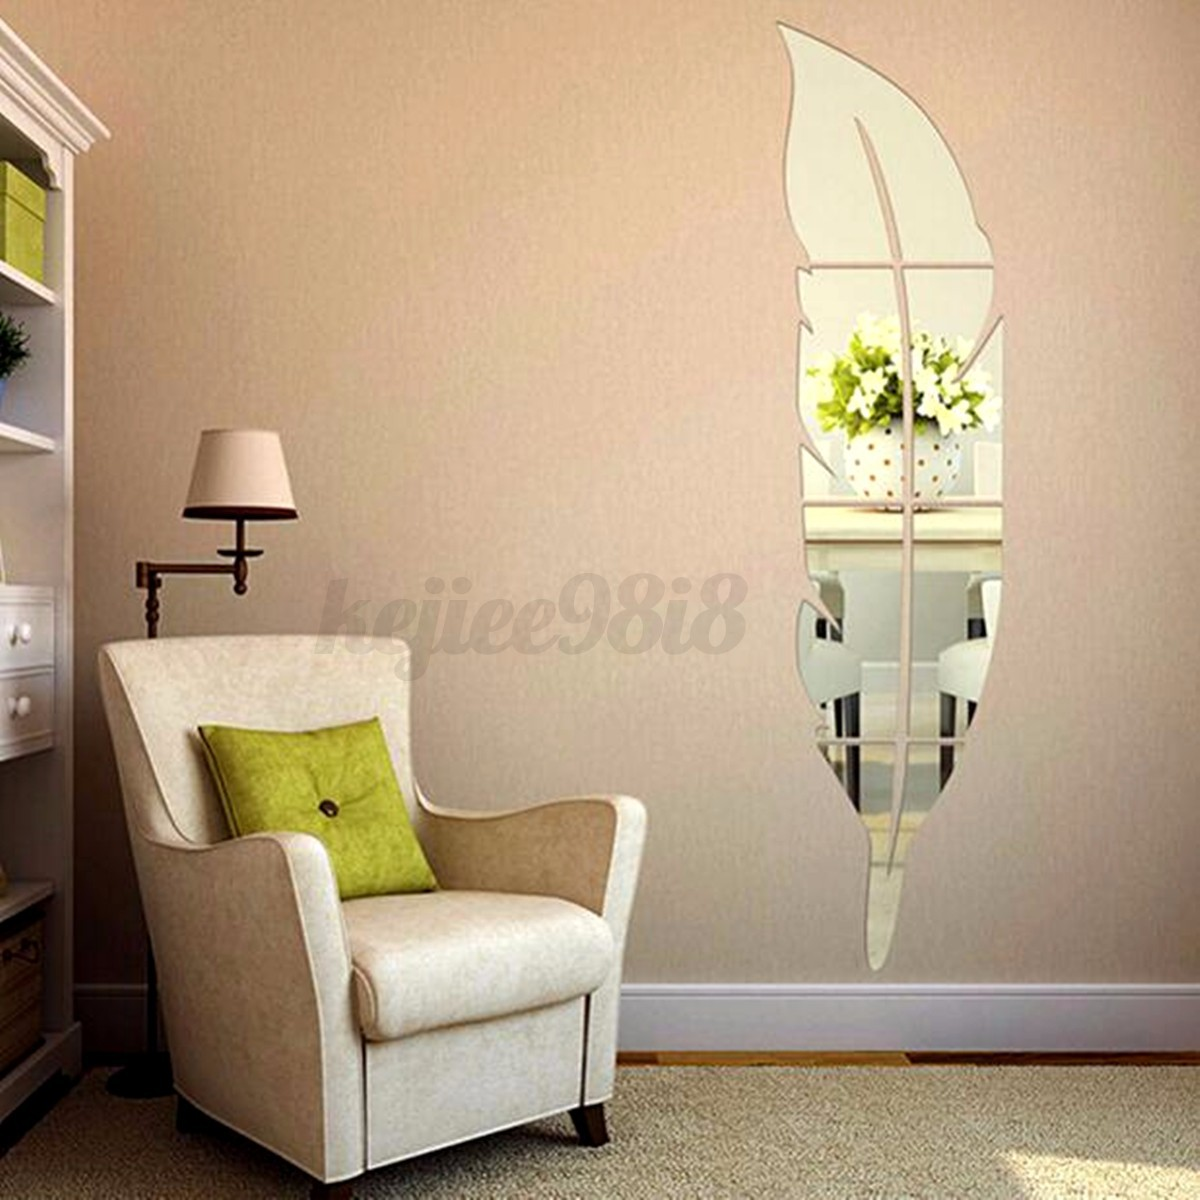 3d feather dressing mirror wall sticker home decal room. Black Bedroom Furniture Sets. Home Design Ideas